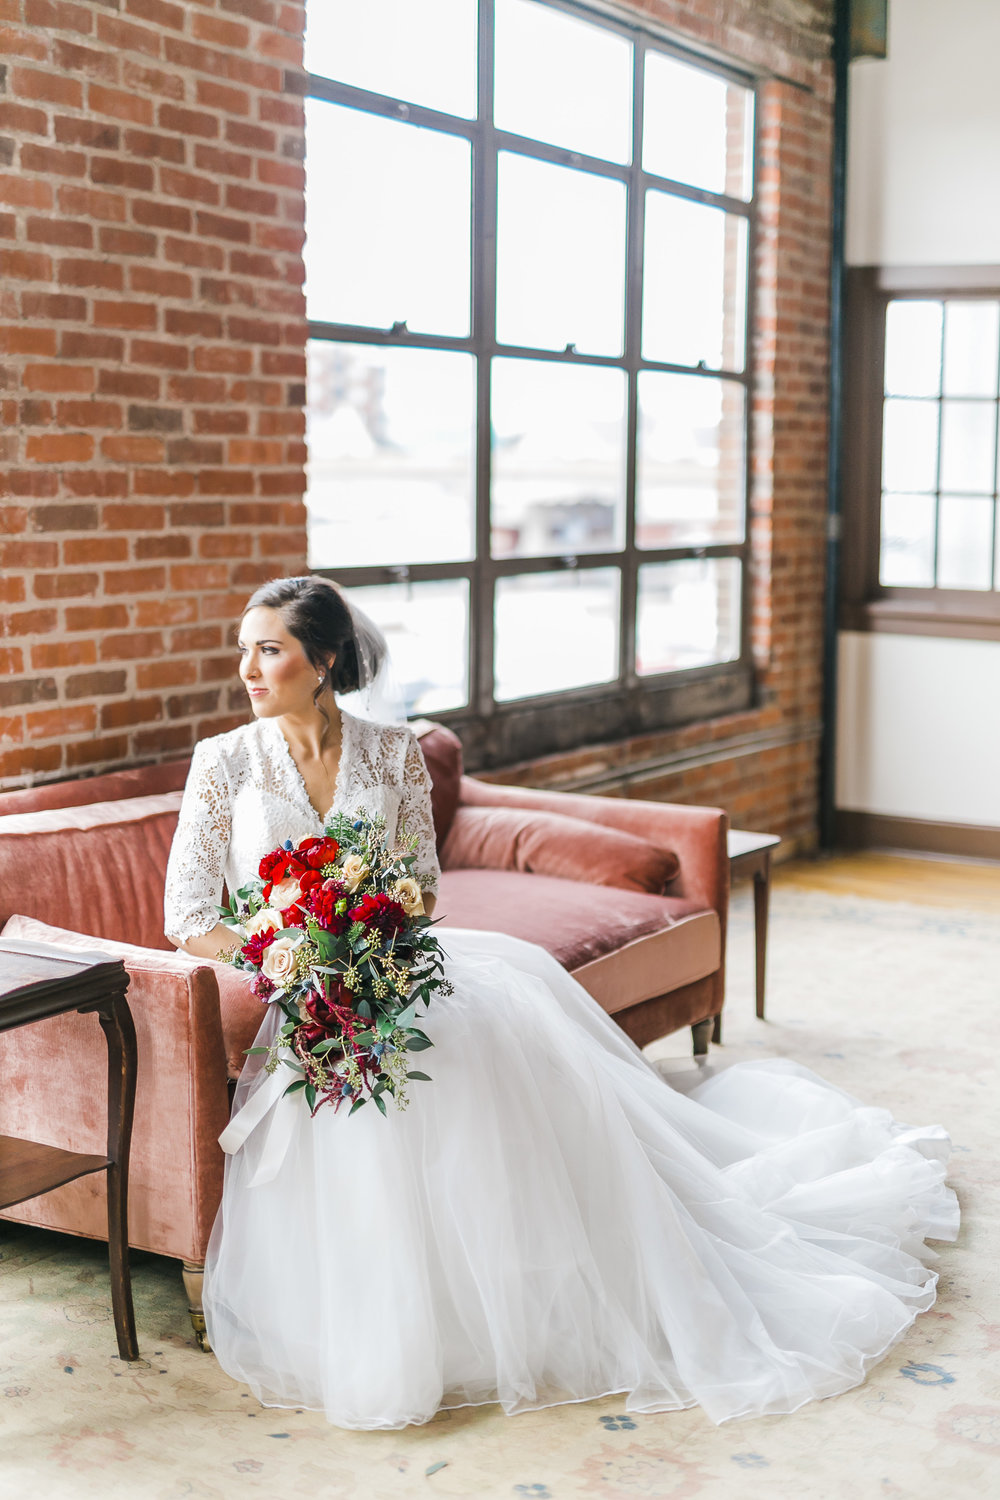 bride with ballgown and red and white flowers on pink velvet couch in brick room downtown knoxville with huge windows